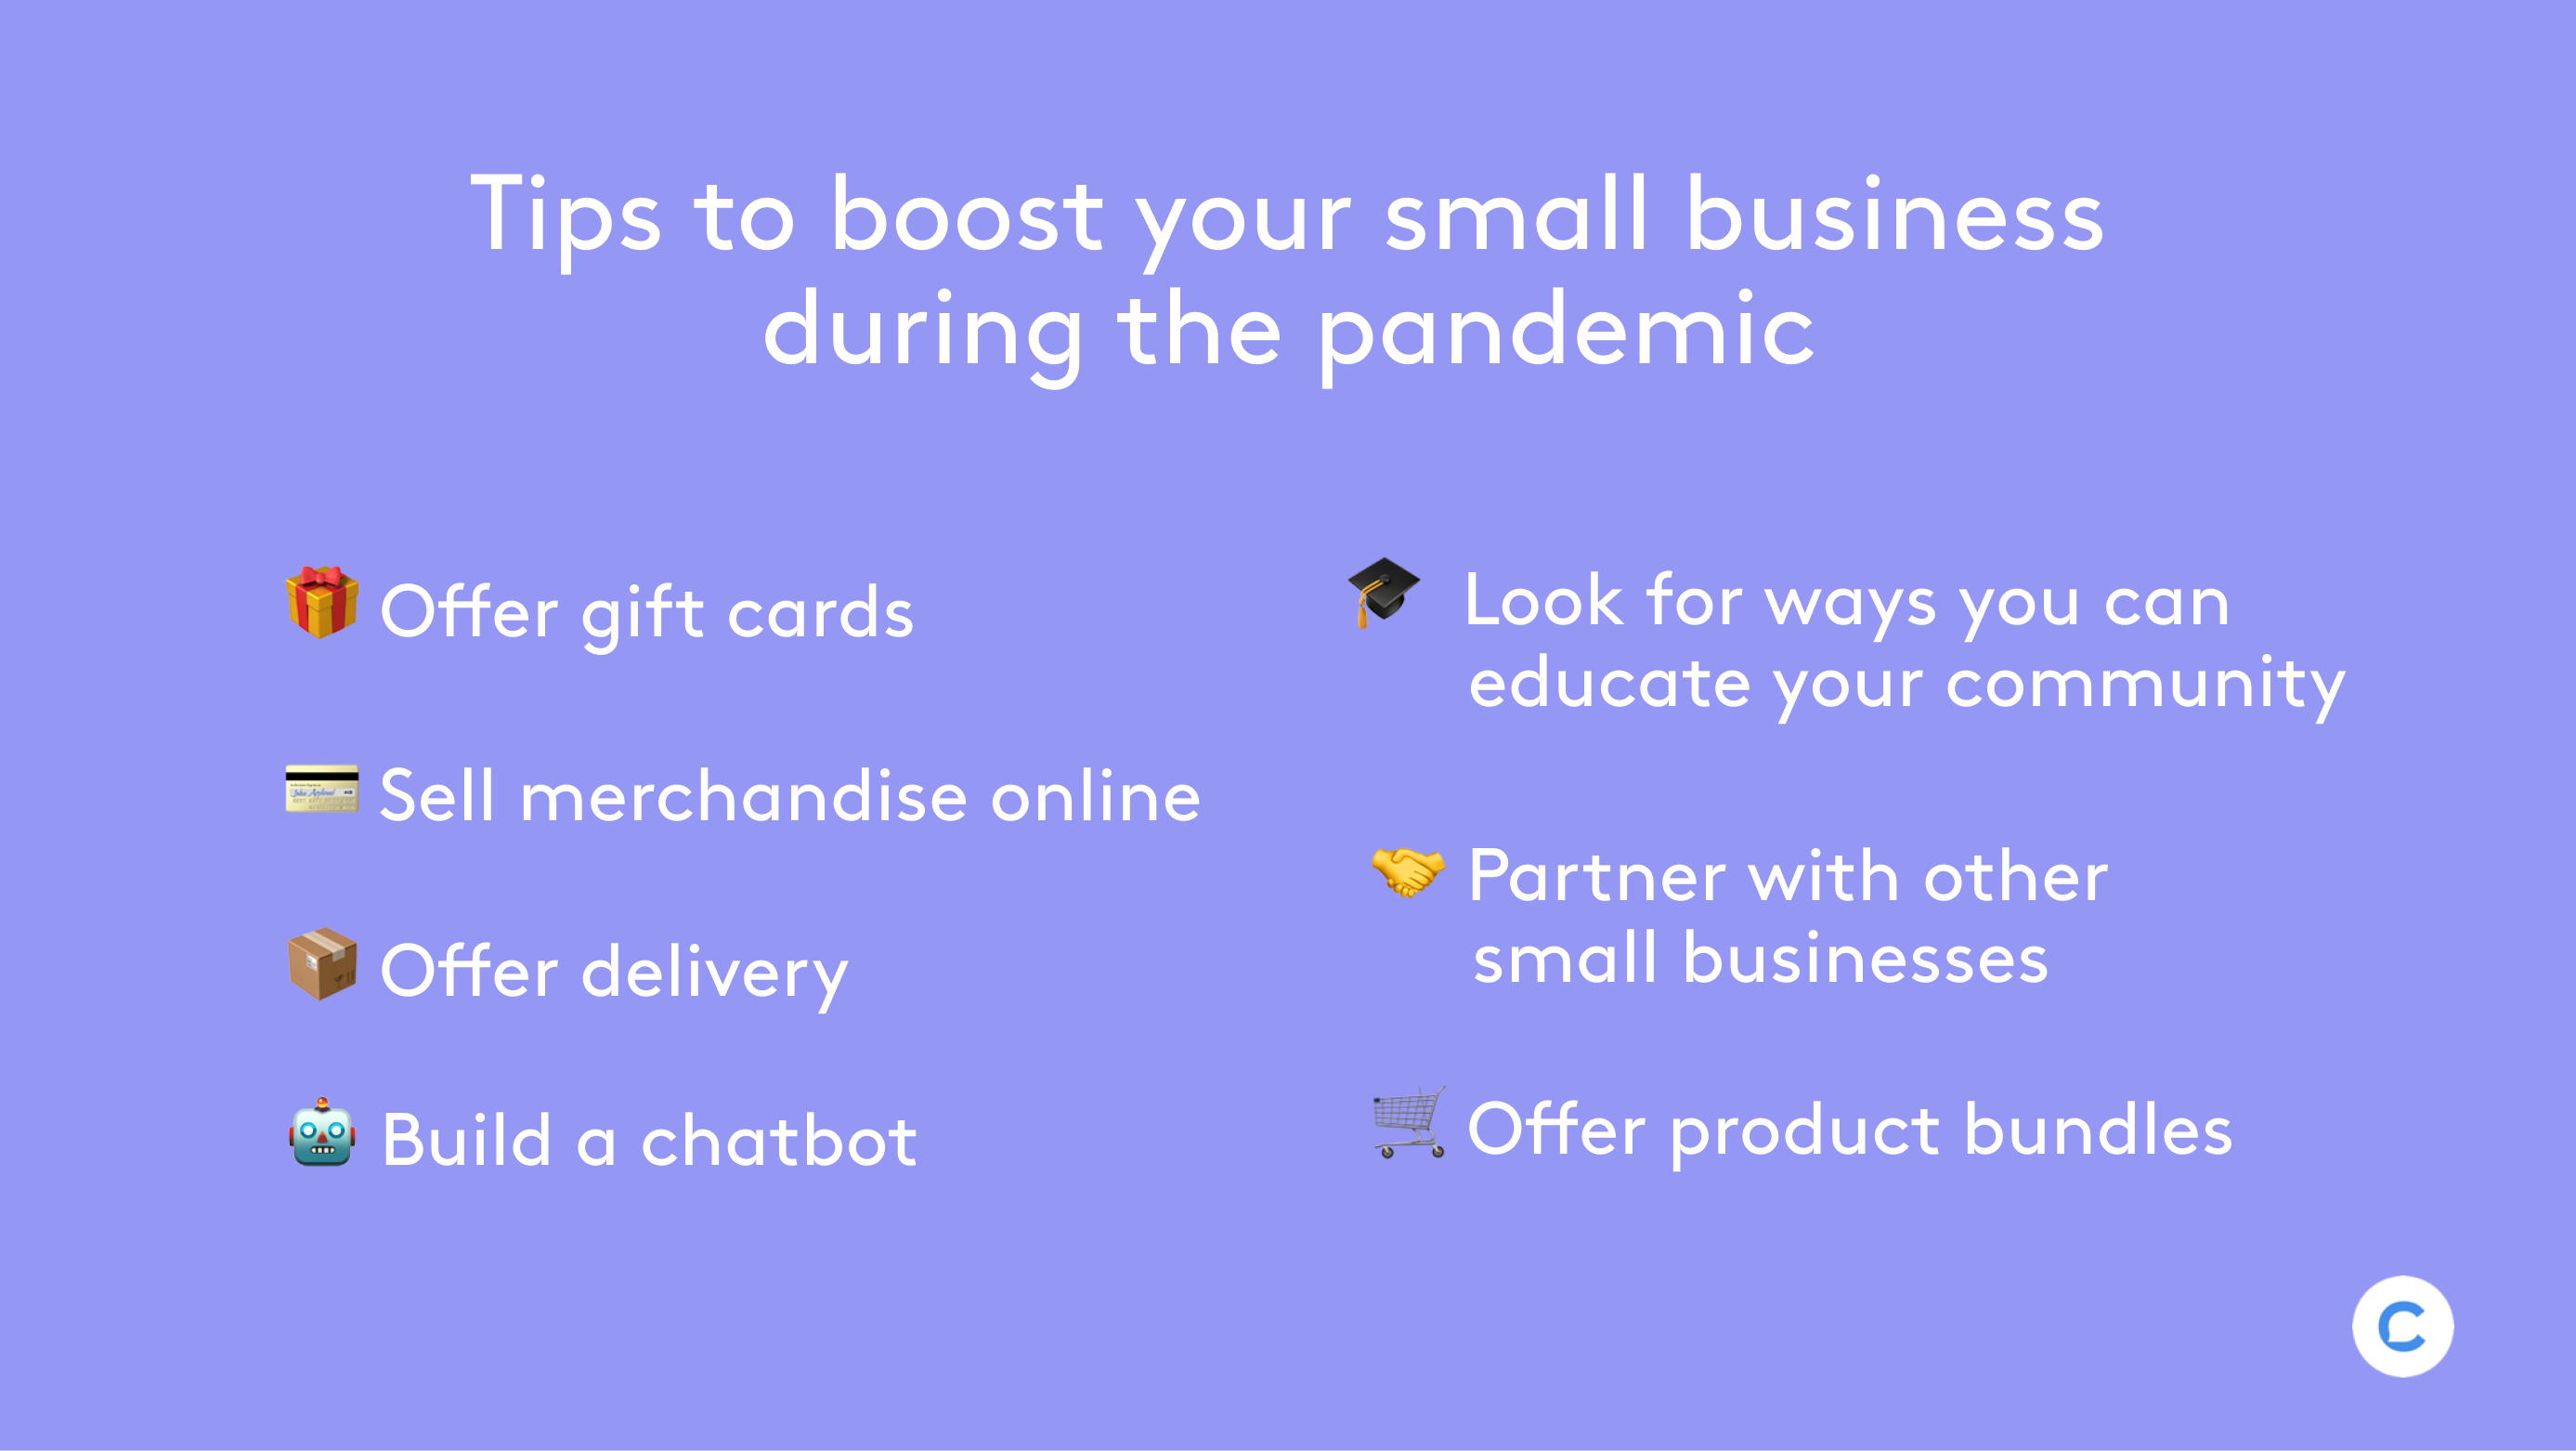 Boost your small business during pandemic